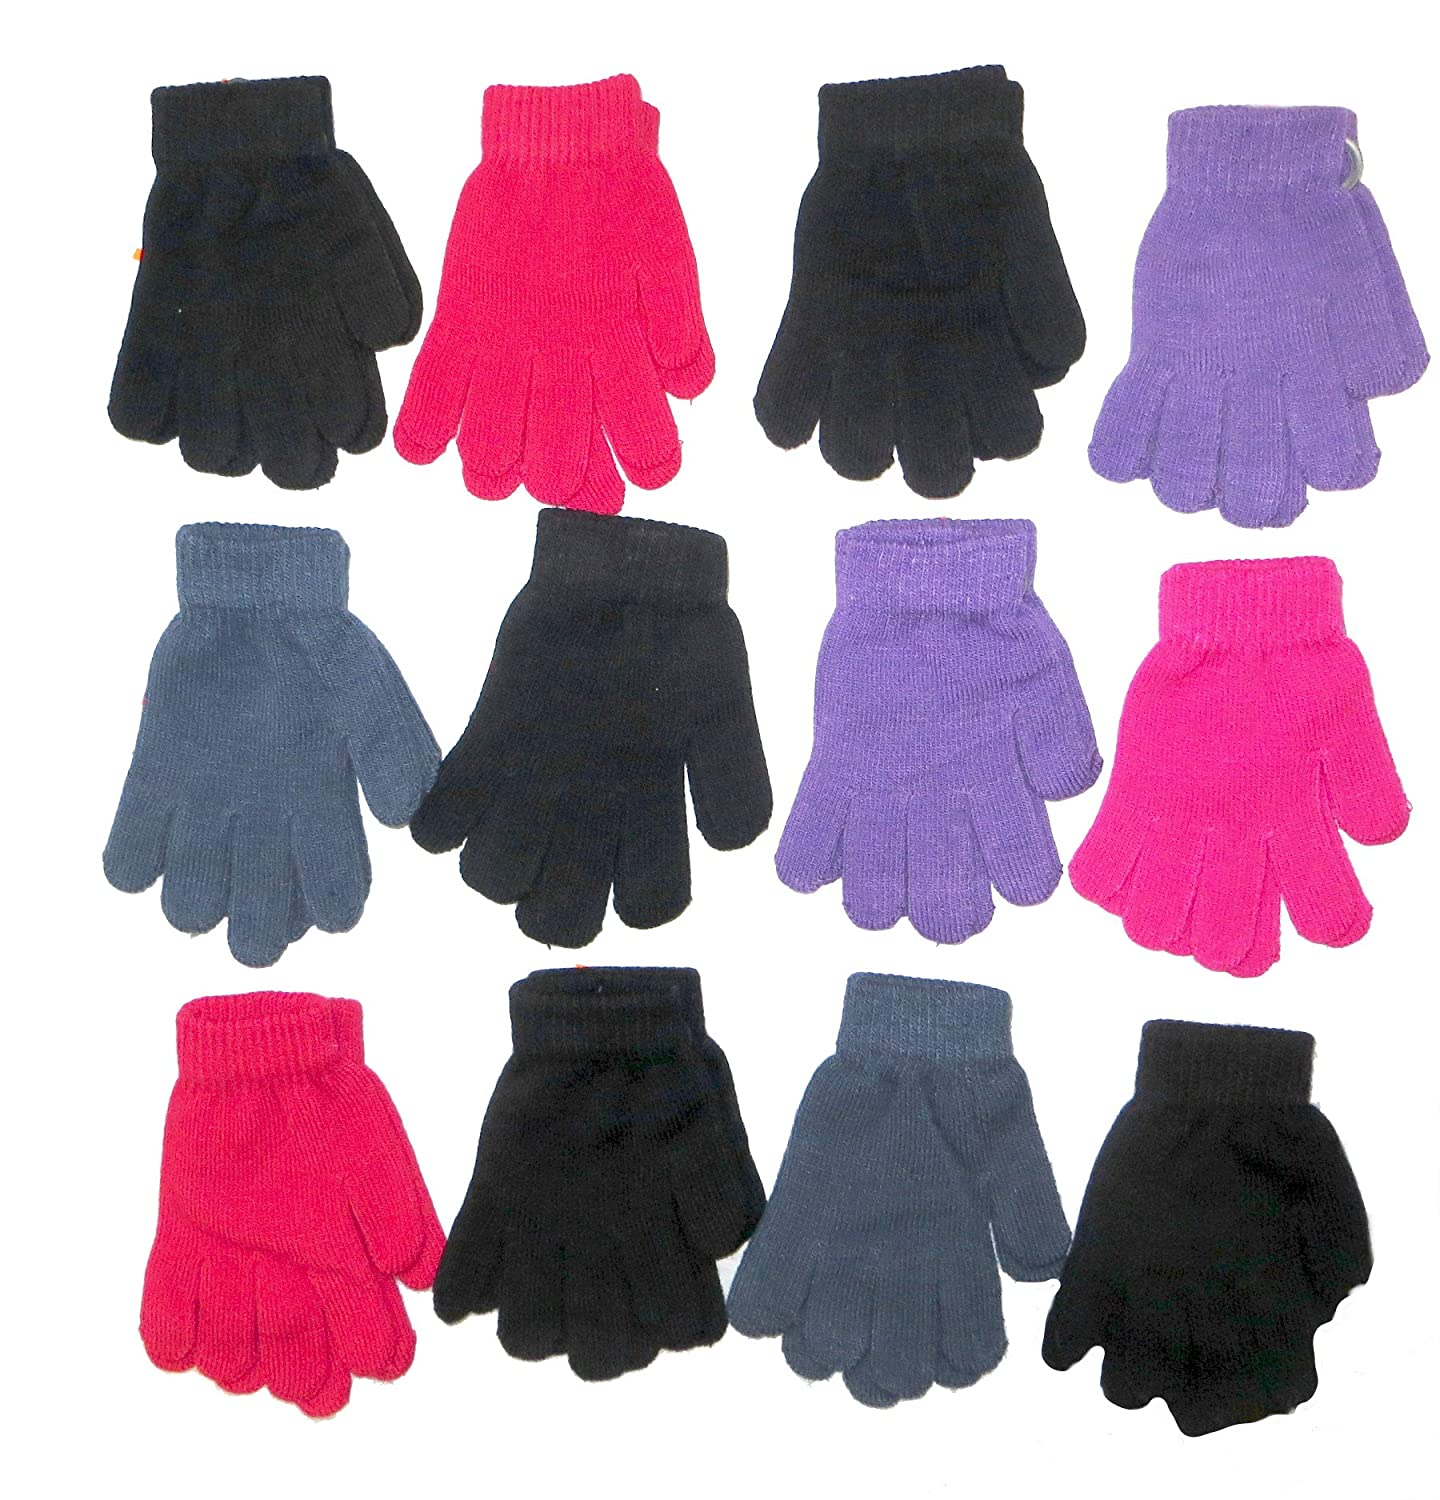 12 Pairs Kids Magic Gloves Several Colours RJM